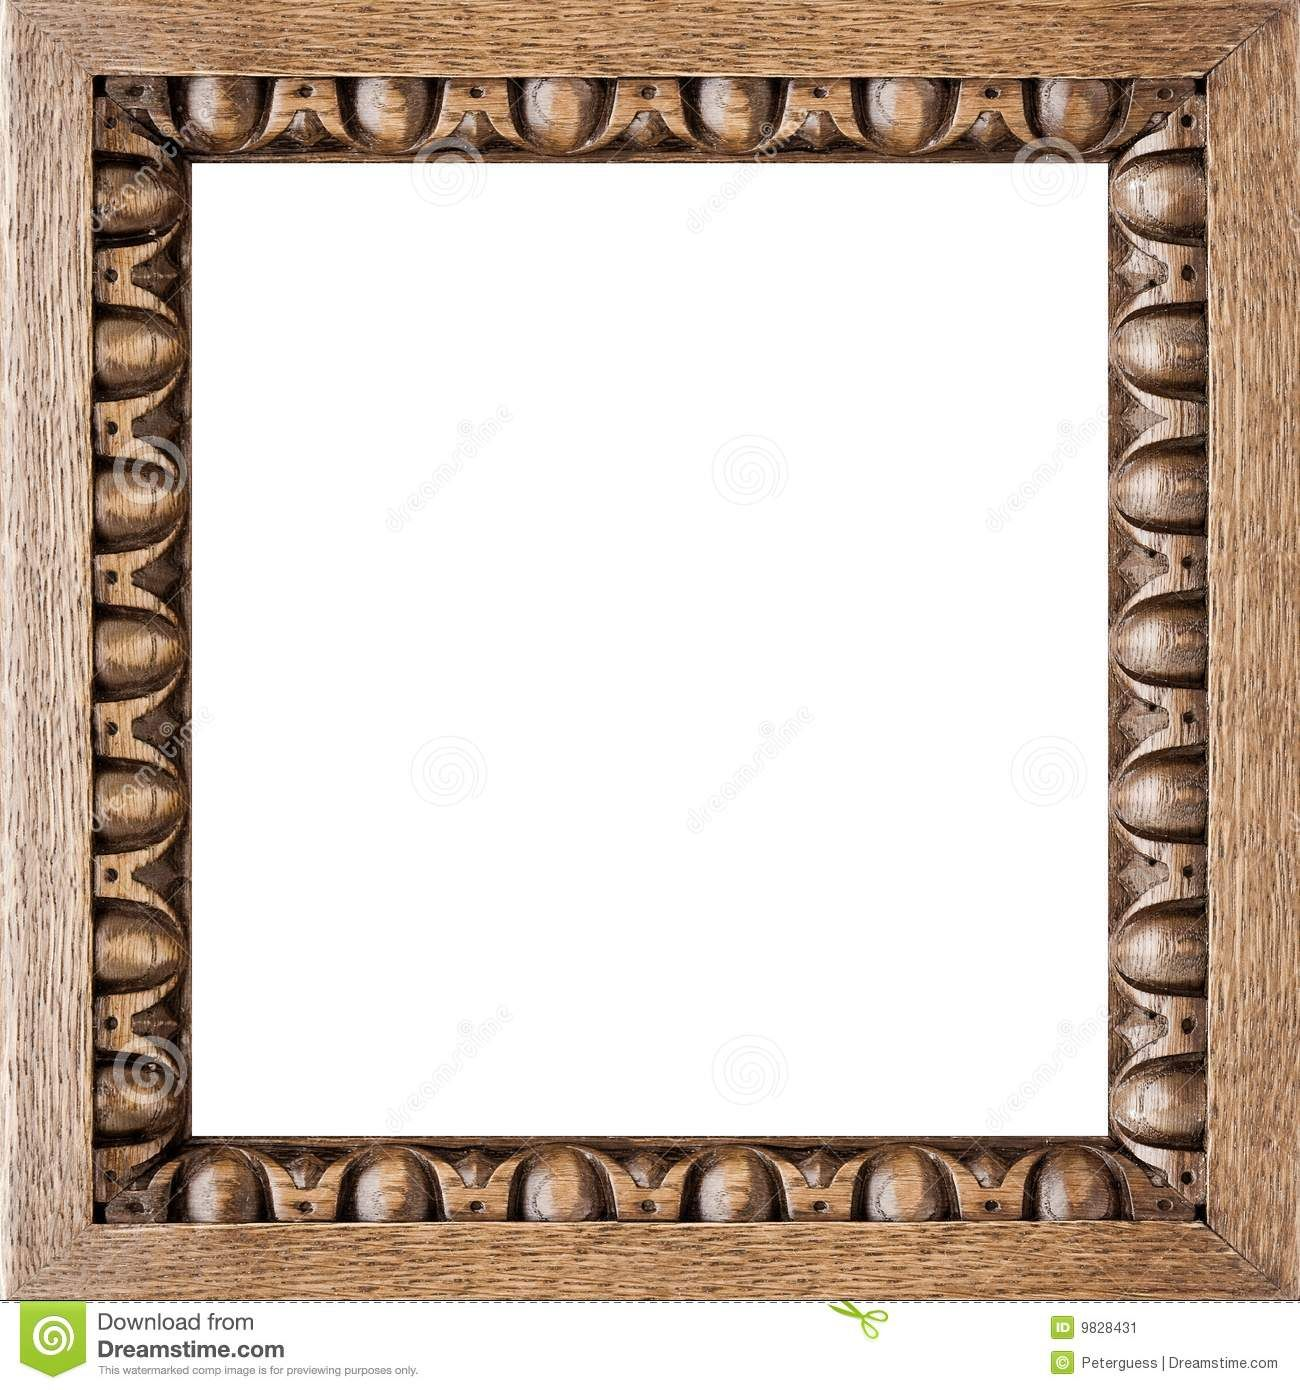 Square Carved Oak Picture Frame Download From Over 61 Million High Quality Stock Photos Images Vector Picture Frames Oak Picture Frames Wooden Mirror Frame